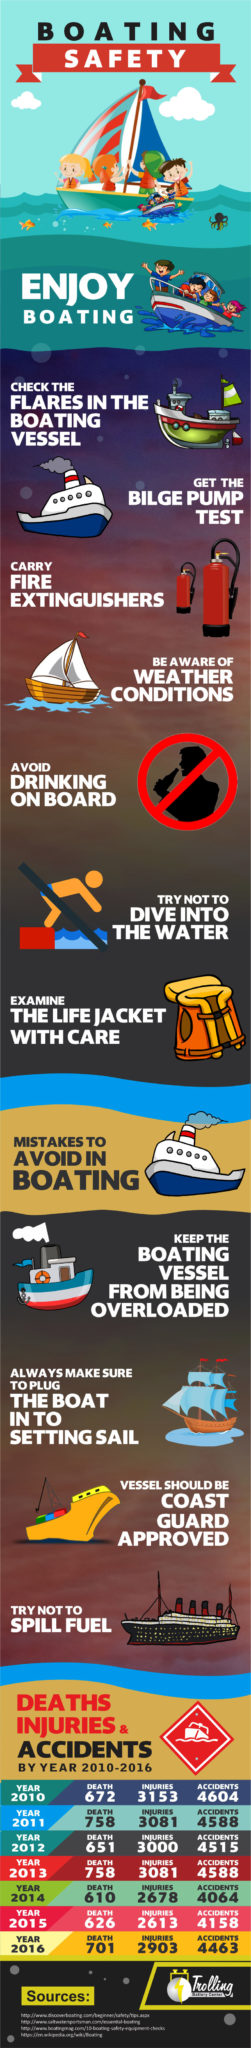 Boating Safety Infographic